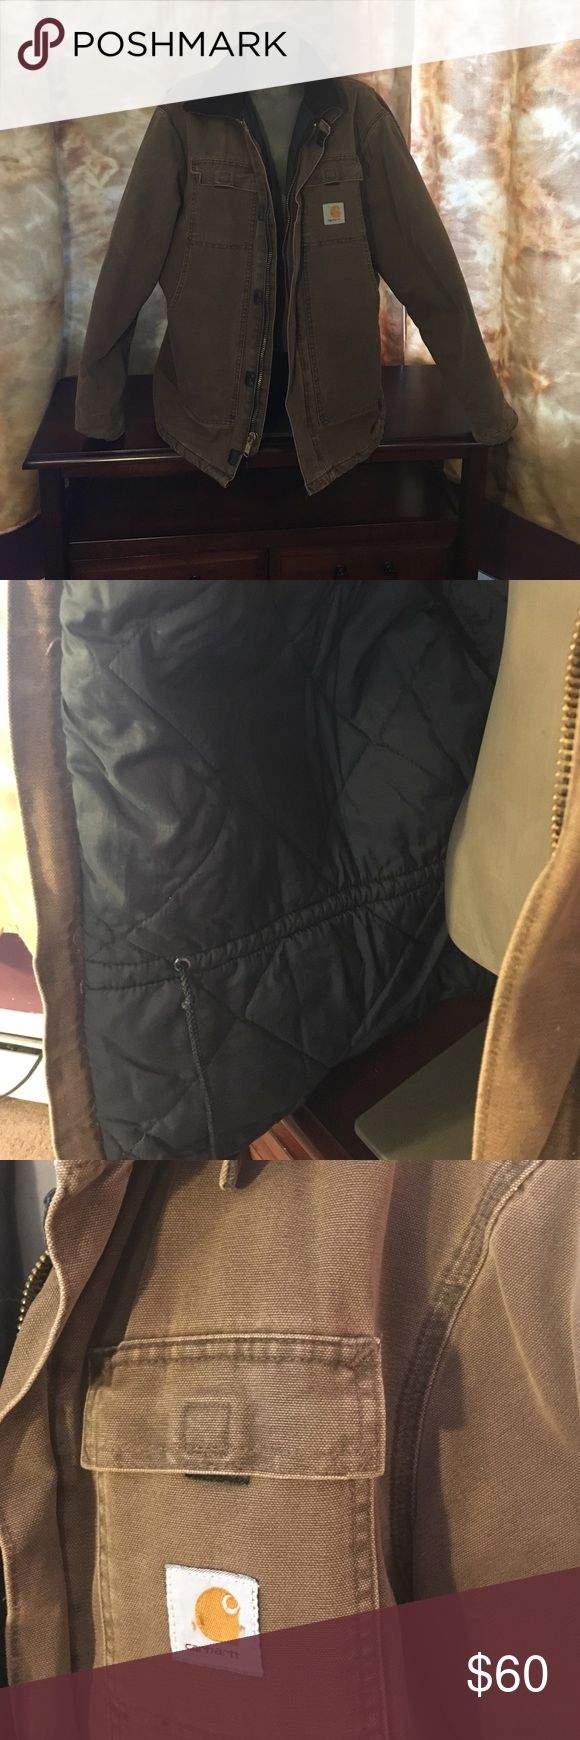 Men's jacket Men's Carhartt winter jacket. Worn a few times. Has a stain on back shoulder see picture 4. Had no size in it. Think it is an extra large. Carhartt Jackets & Coats Performance Jackets